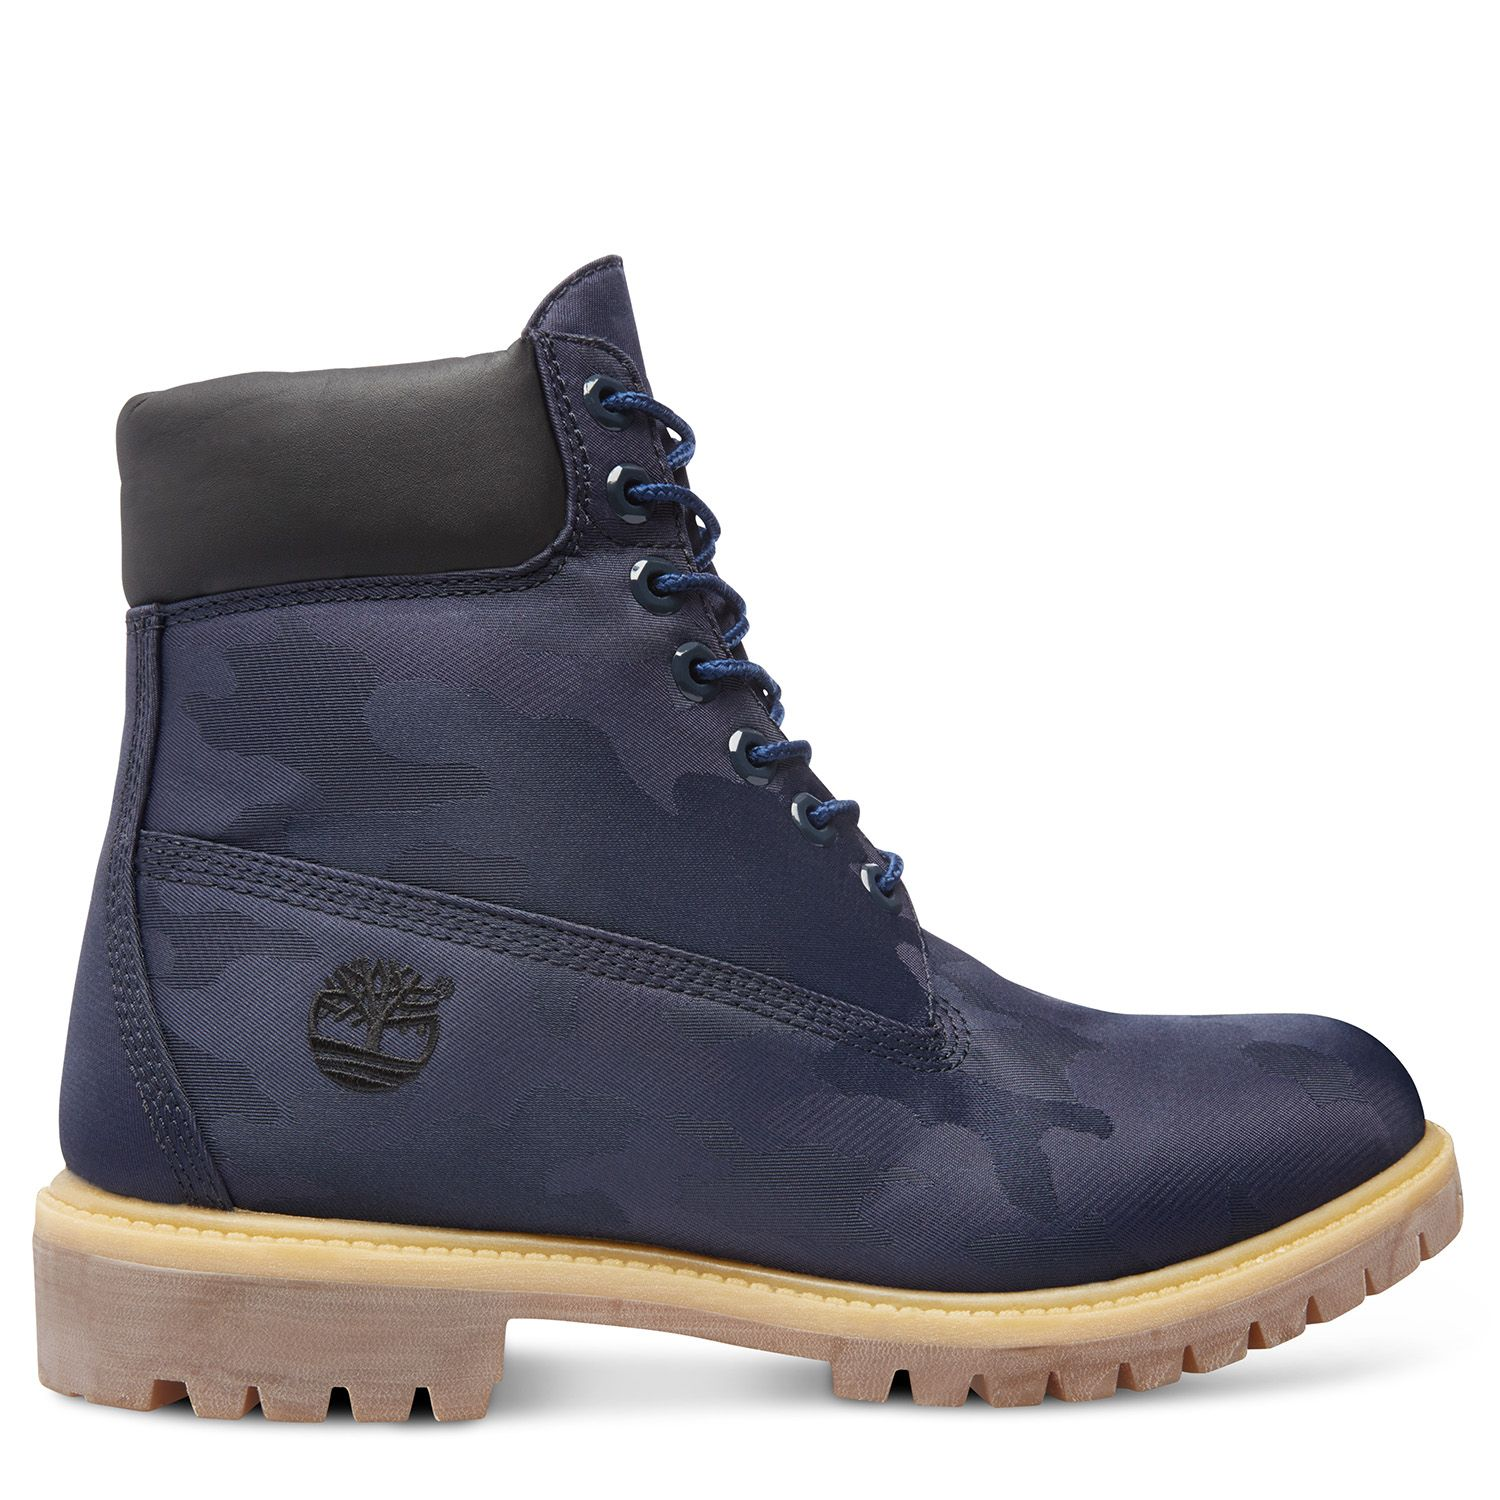 Timberland Icon 6 Inch Boot (Navy Camo Jacquard) € 169